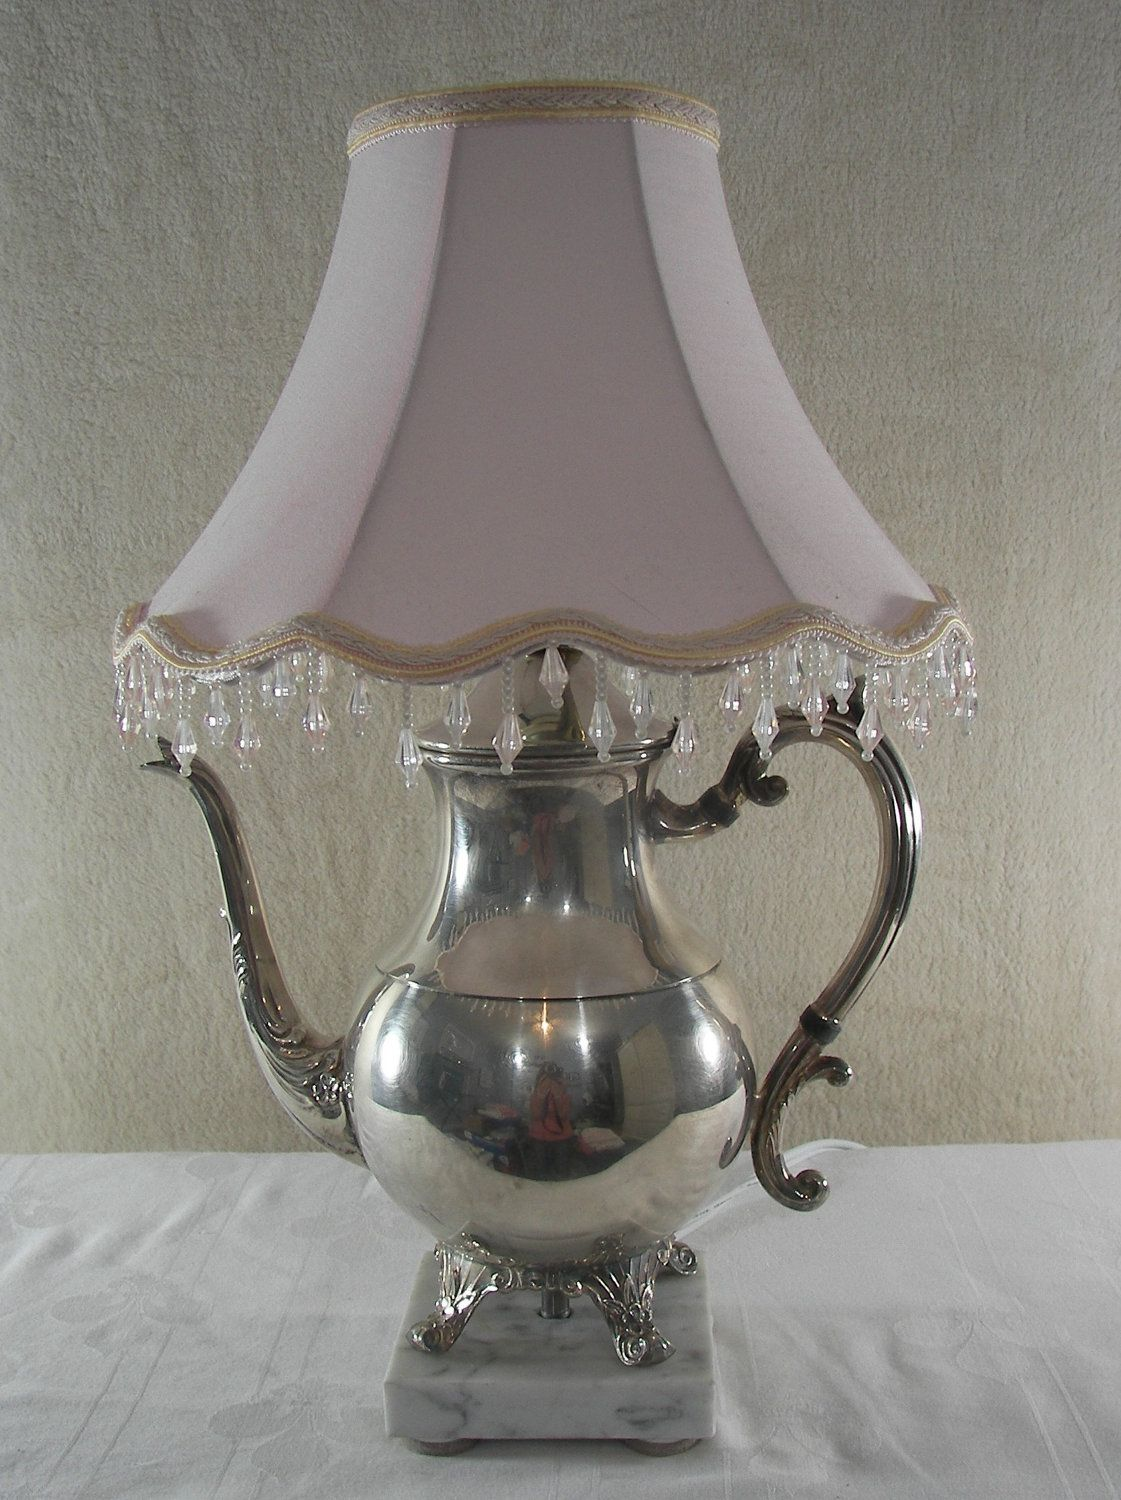 Small solar lights for crafts - Repurposing Old Teapots Vintage Silver Plated Teapot Lamp Repurposed By Pinkpicketcottage